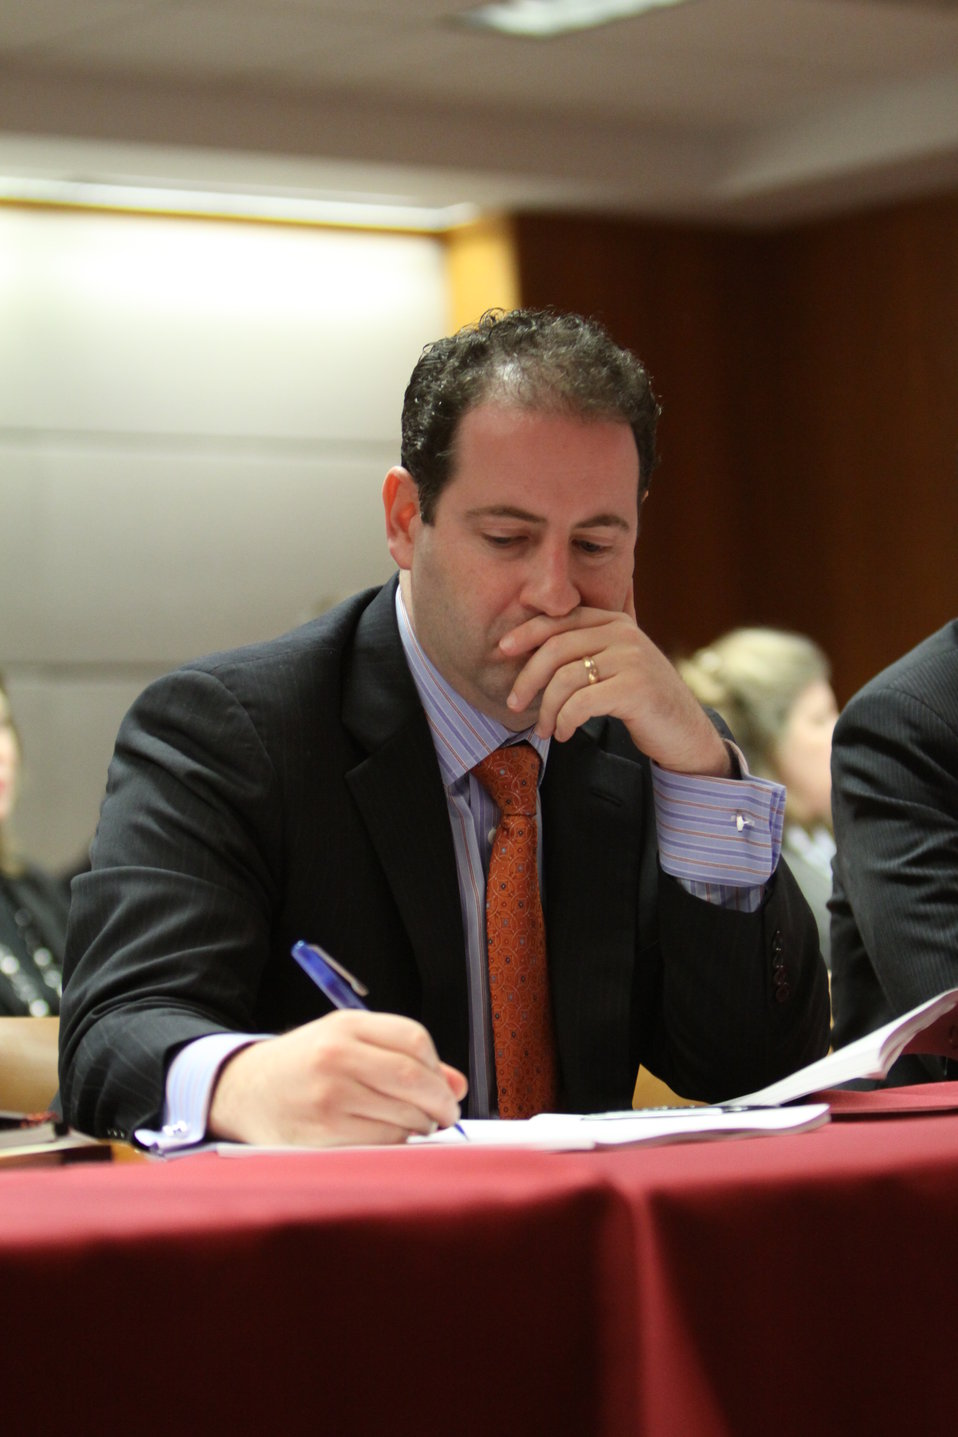 Rick Kaplan, Chief Counsel and Senior Legal Advisor to the Chairman